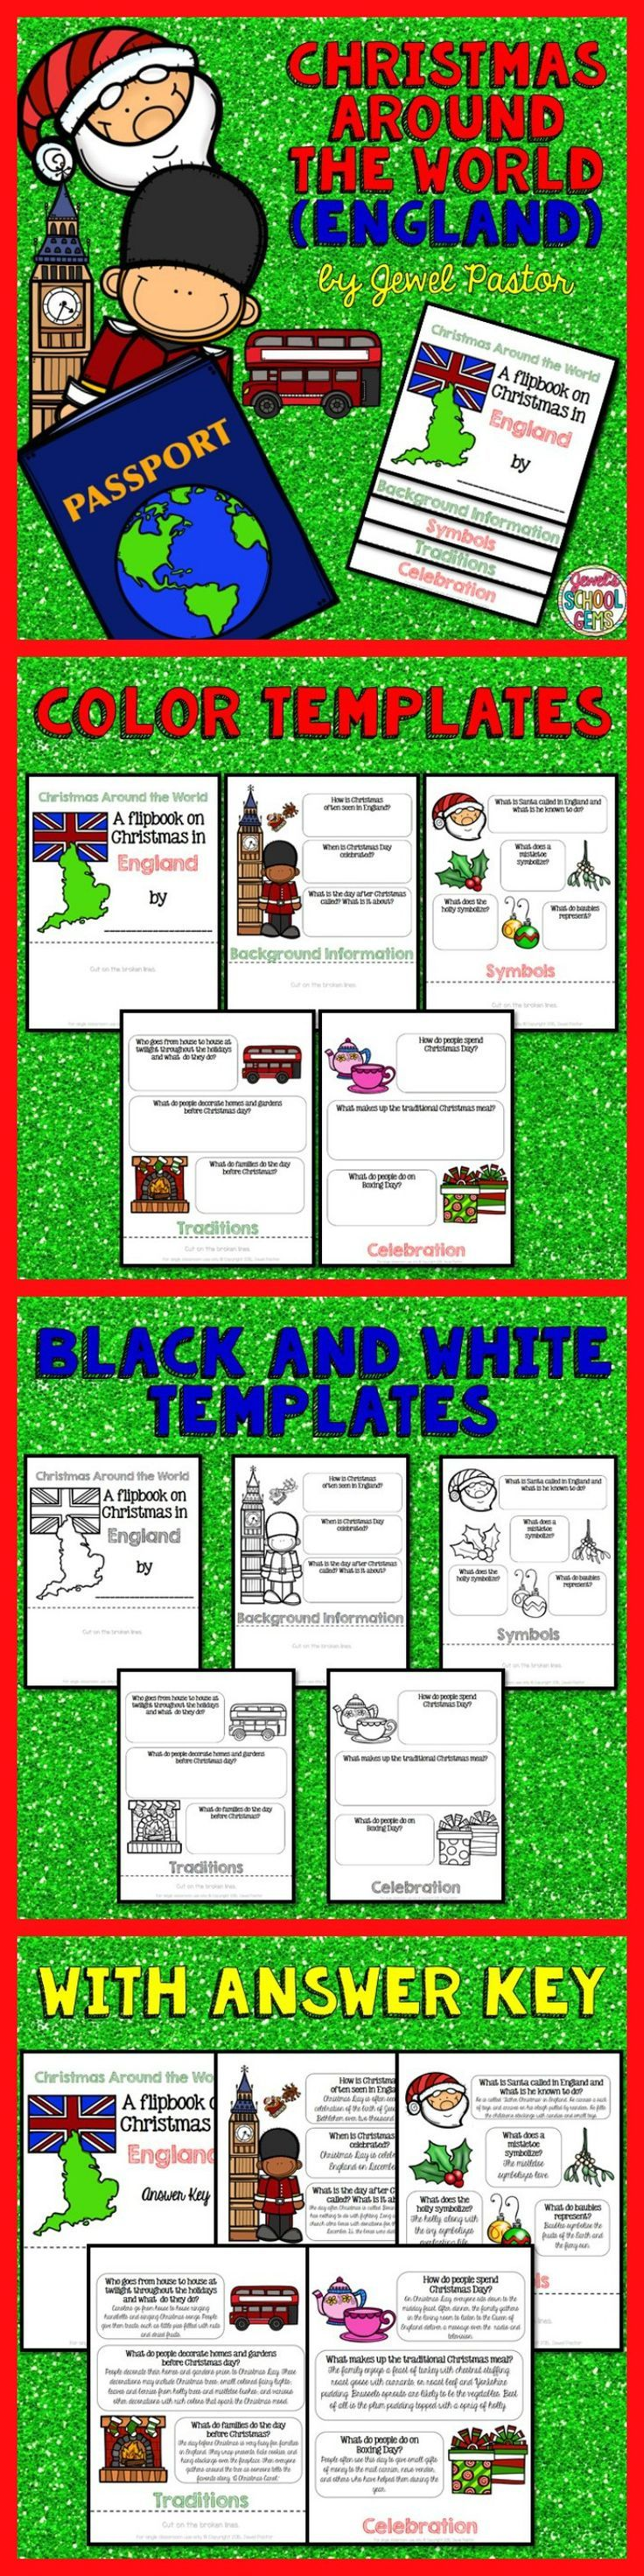 """CHRISTMAS AROUND THE WORLD (ENGLAND)  Engage your students with this Christmas Around the World Activity: """"A Research Flipbook on Christmas in England"""".  This resource contains: *5 pages of color templates *5 pages of black and white templates *5 pages with answers to the questions (Answer Key)  Children will learn about England's Christmas traditions and celebrations in a fun and interactive way with this flipbook research project!  Please see Preview to see the color templates."""